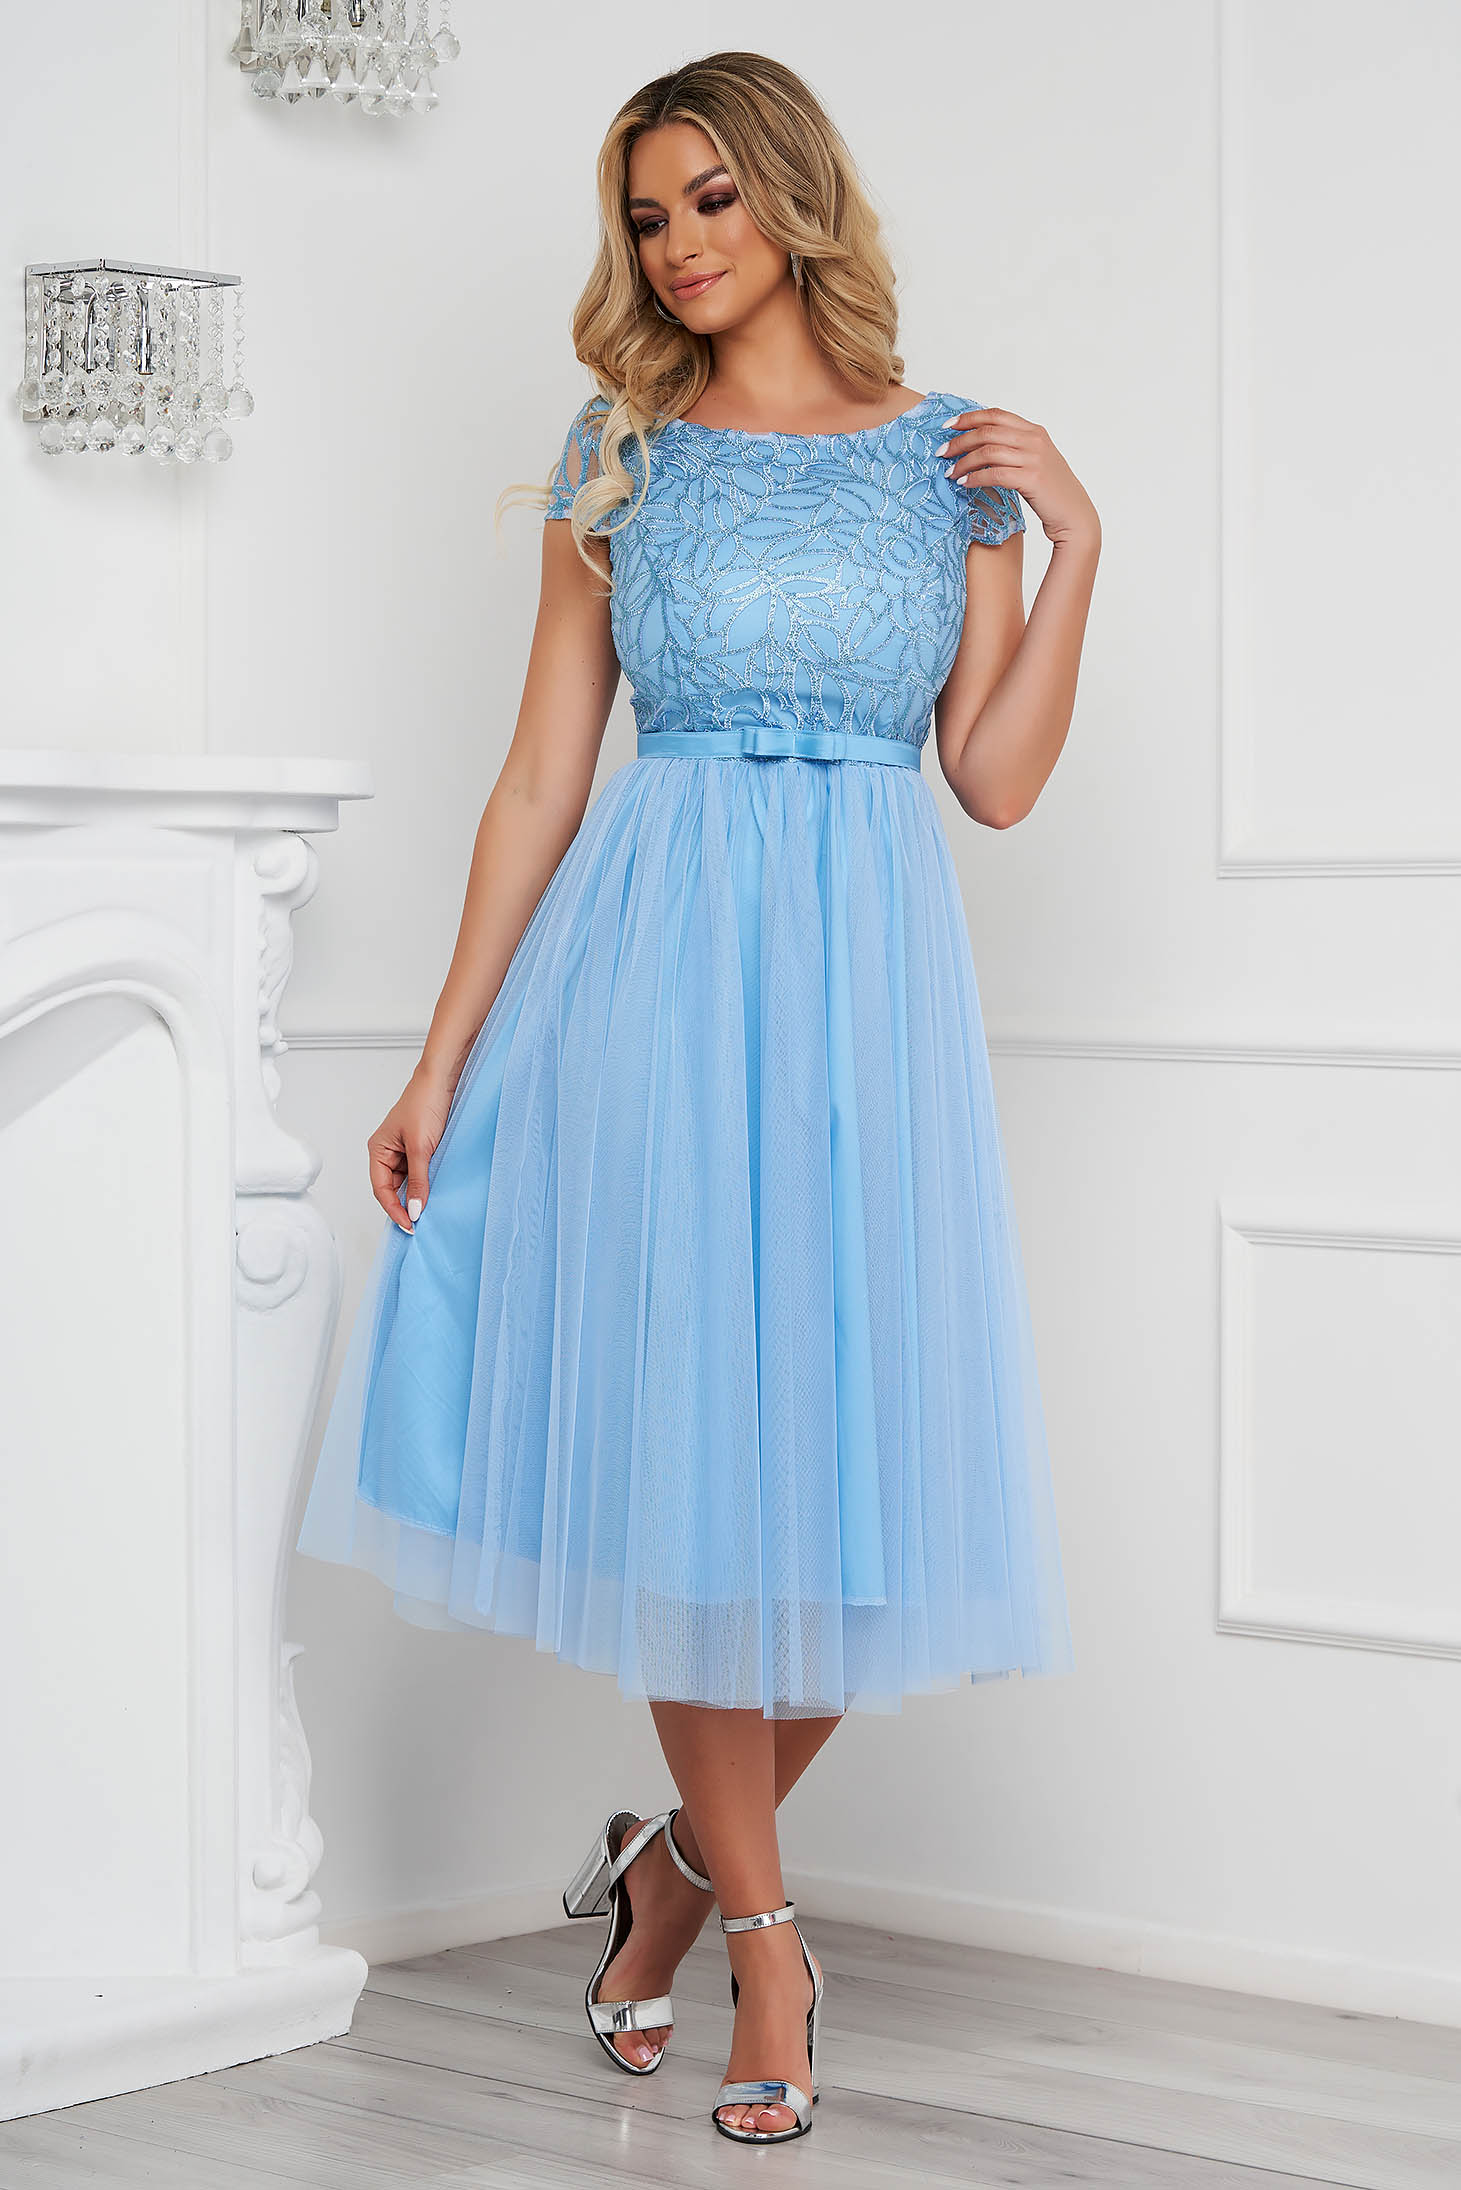 Dress StarShinerS lightblue midi occasional cloche laced from tulle accessorized with tied waistband